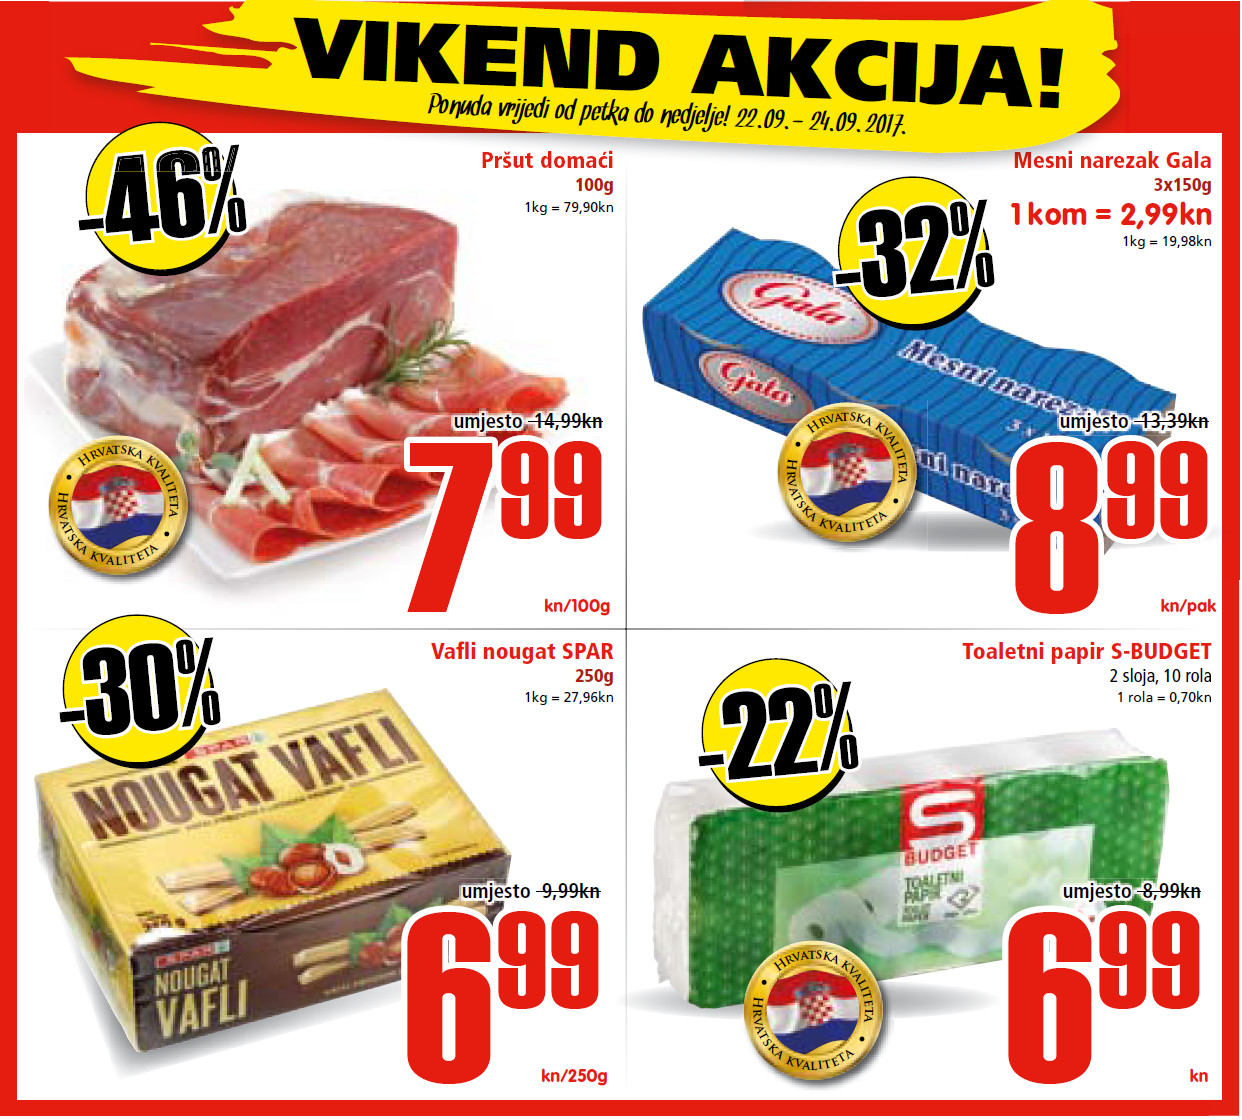 Ne propustite nova vikend sniženja od 22.- 24.09.2017. u Spar i Interspar supermarketima.